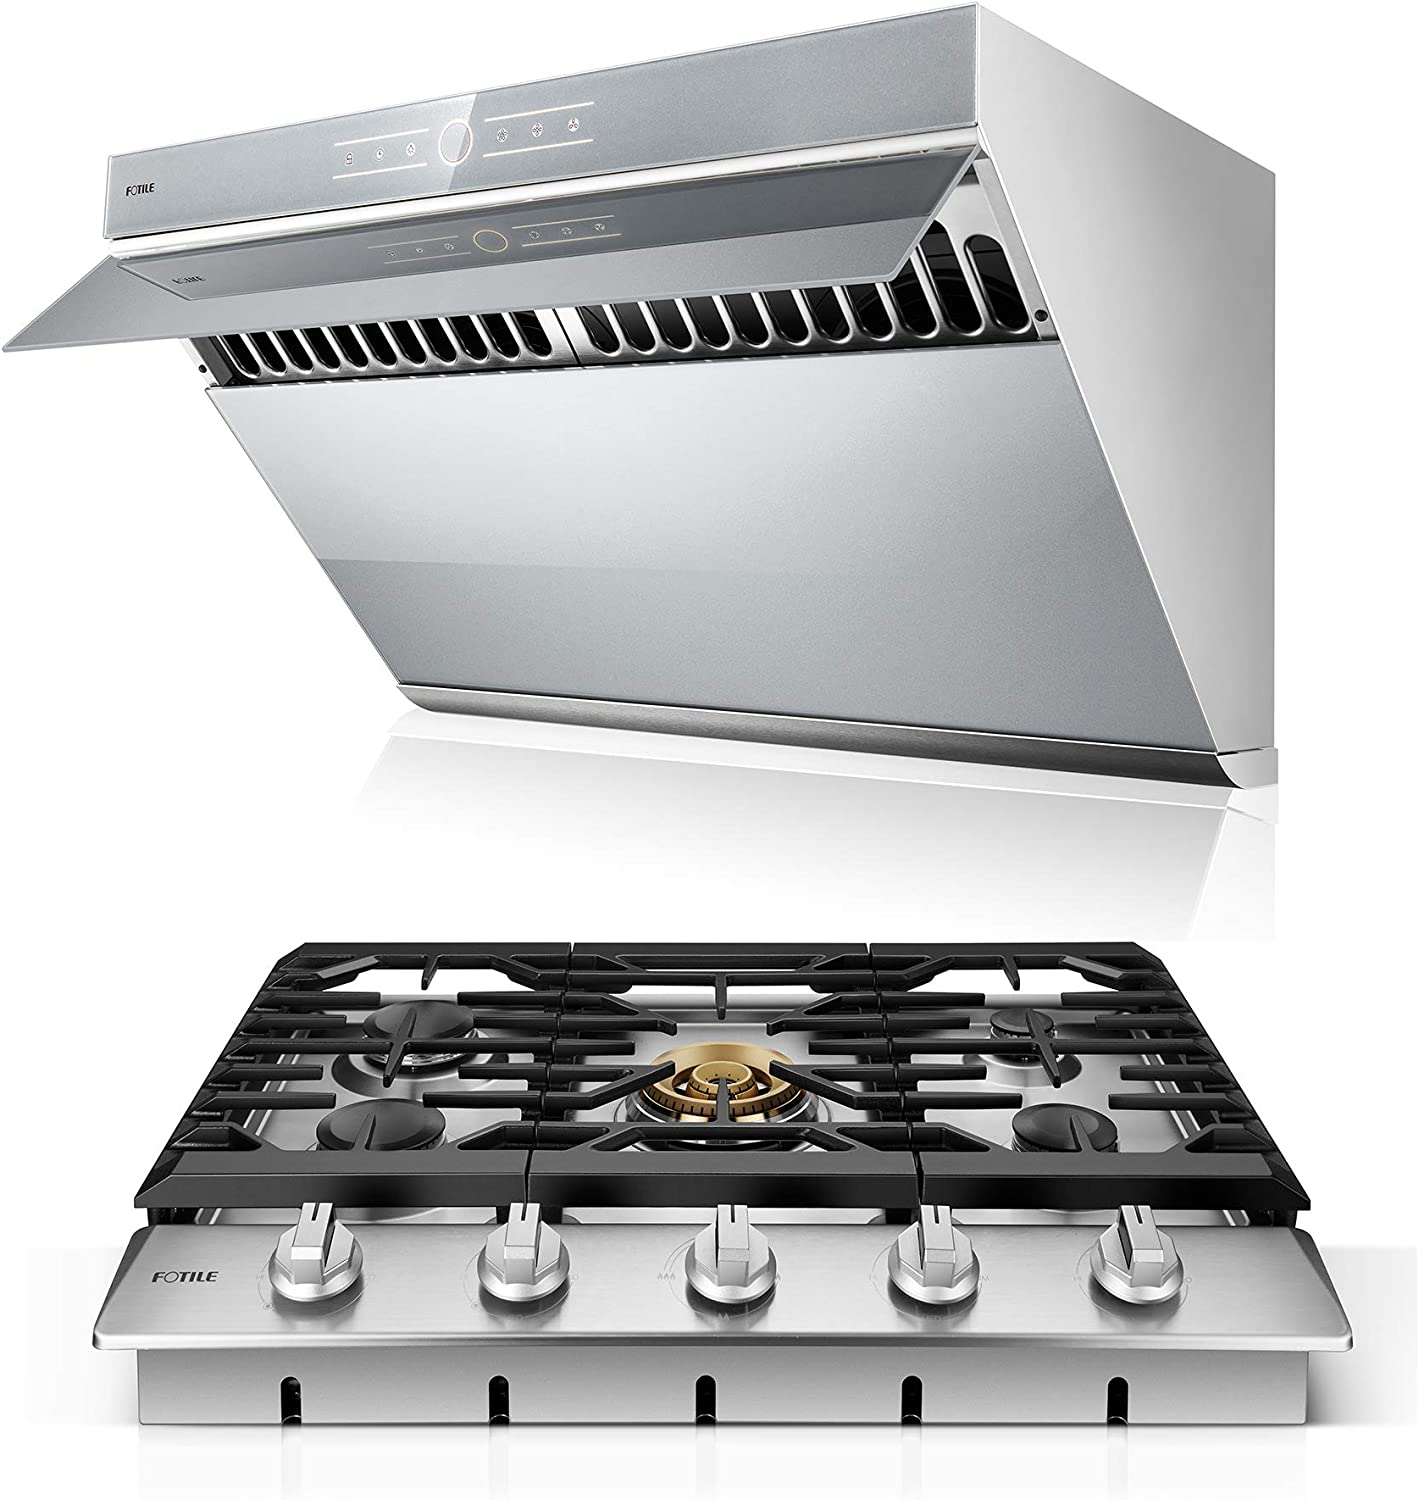 Amazon Com Fotile Range Hood Under Cabinet Kitchen Stainless Steel Wall Mount With Led Light Silver Gray Cooktop Bundle 30 Inches Appliances